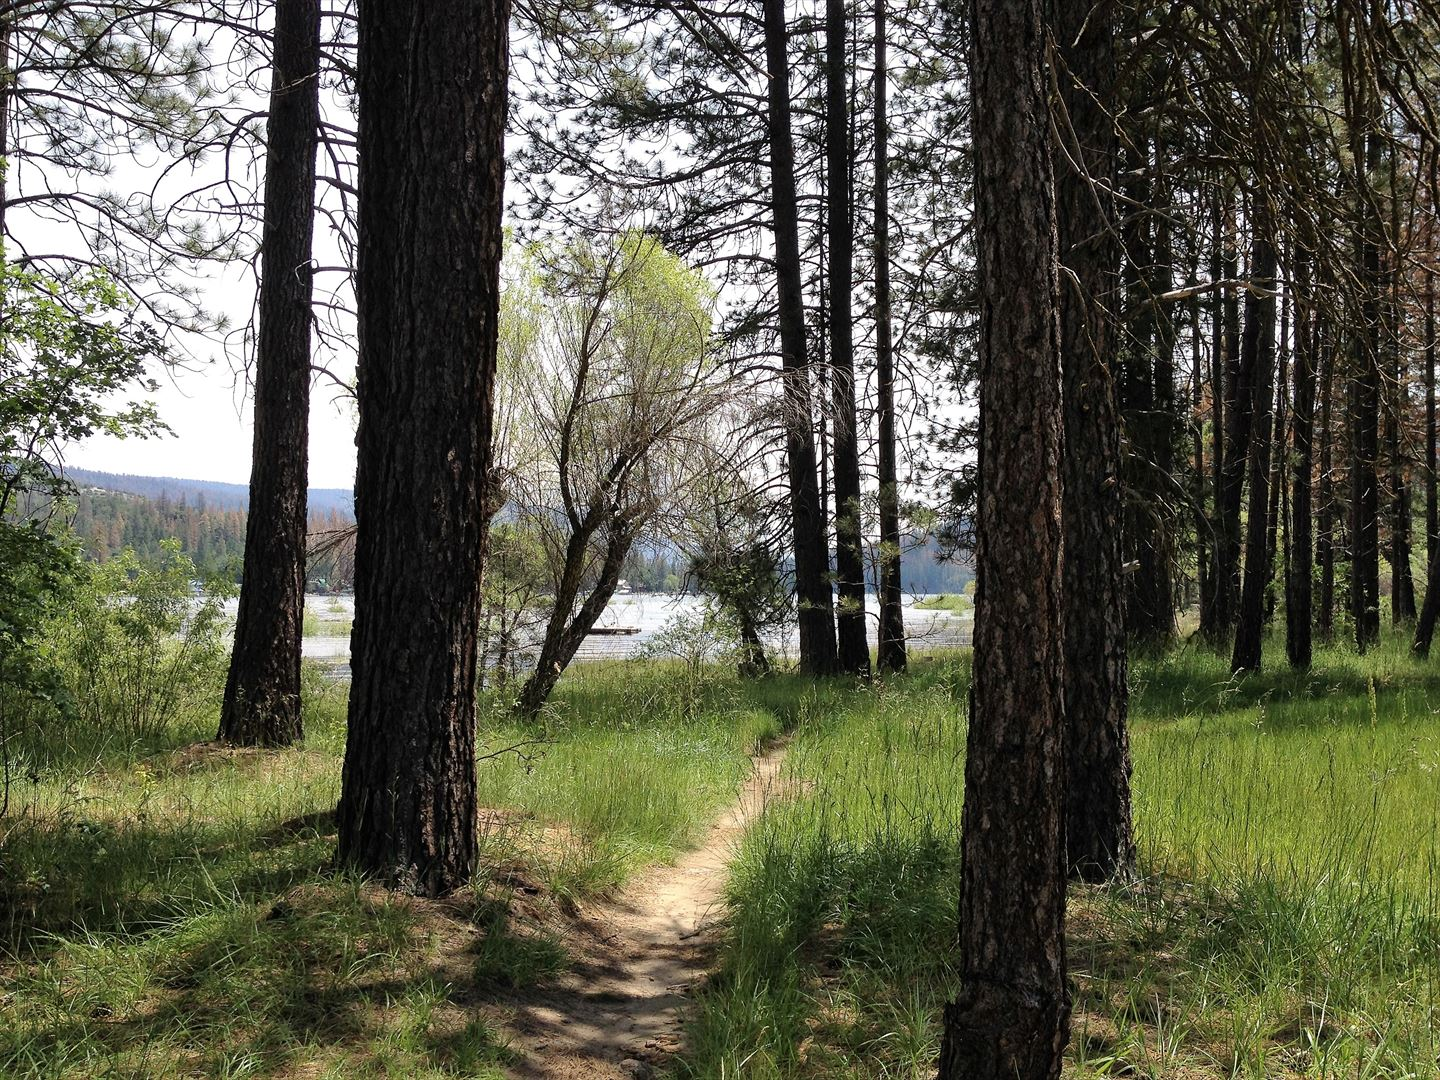 An easy 5 minute stroll through a charming wooded path takes you to the shore of Bass Lake and day use areas!